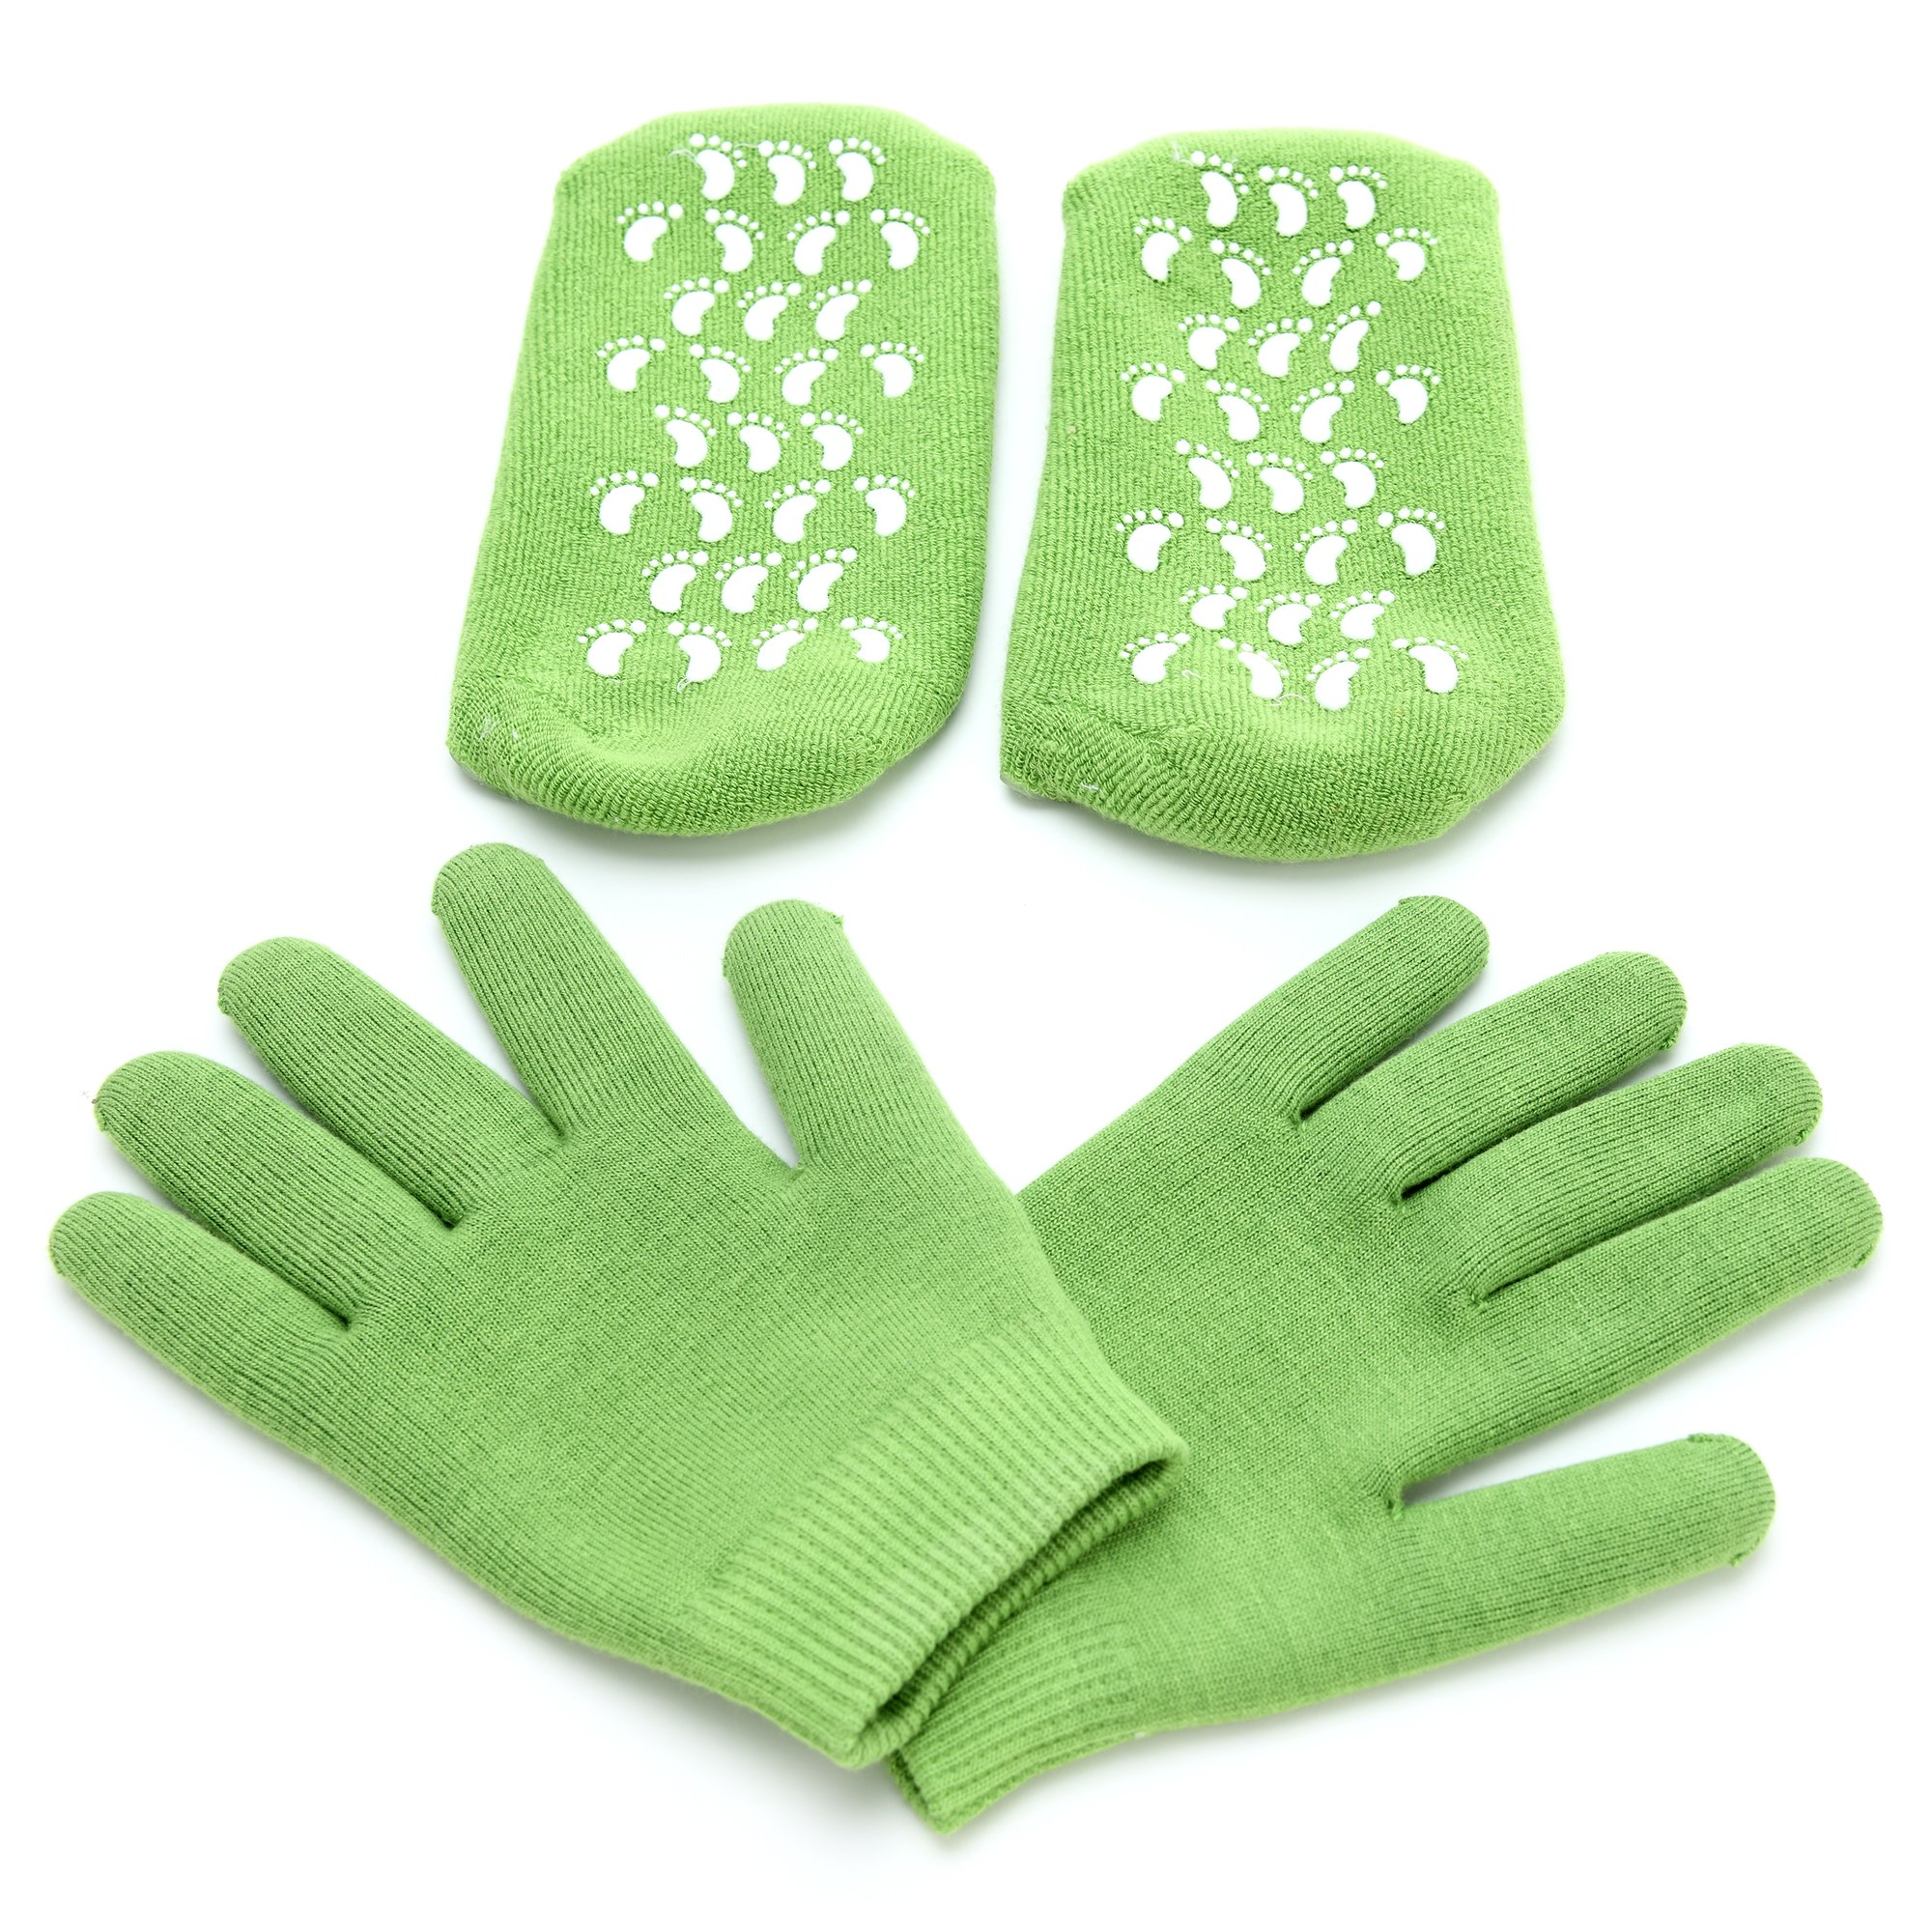 Evelyn's Care Moisturizing Gel Gloves and Socks Bundle Made of Cotton for Dry and Cracked Skin Repair, Soften Your Hands and Feet for a Gentle Feel, One Size Fit All (1 Pair Gloves and 1 Pair Socks)